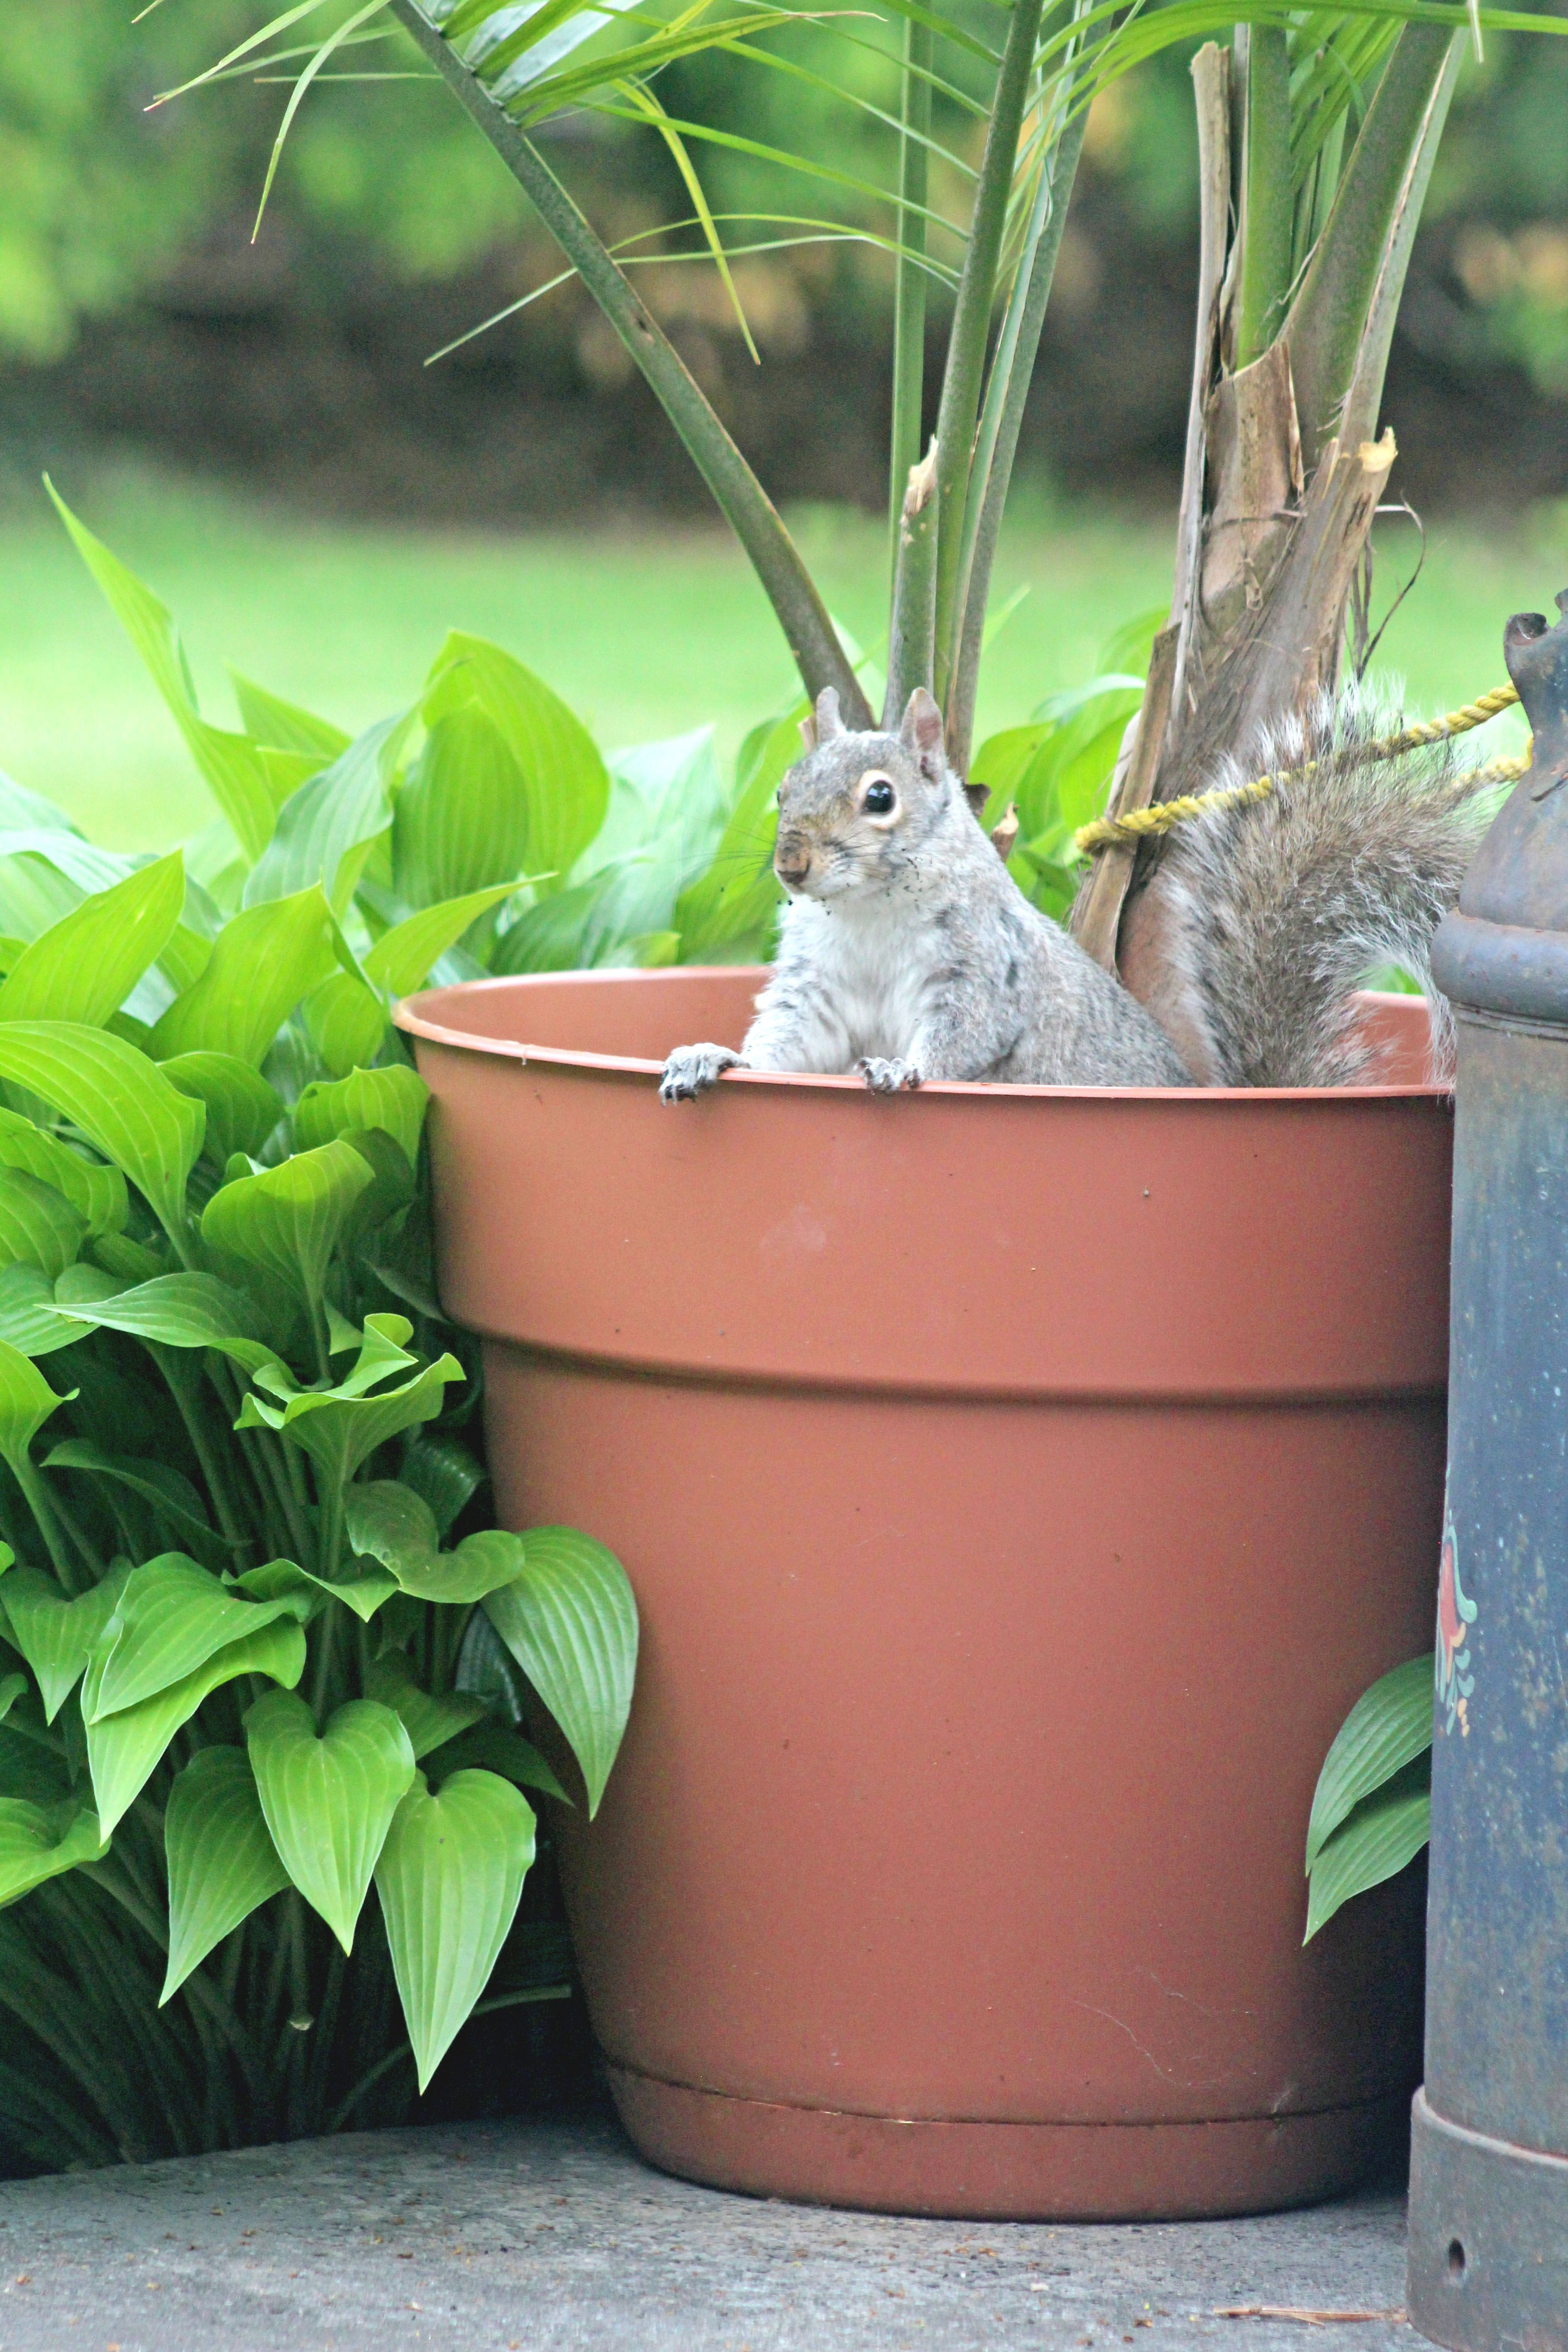 How To Keep Squirrels Out Of Your Garden Best Squirrel Repellents